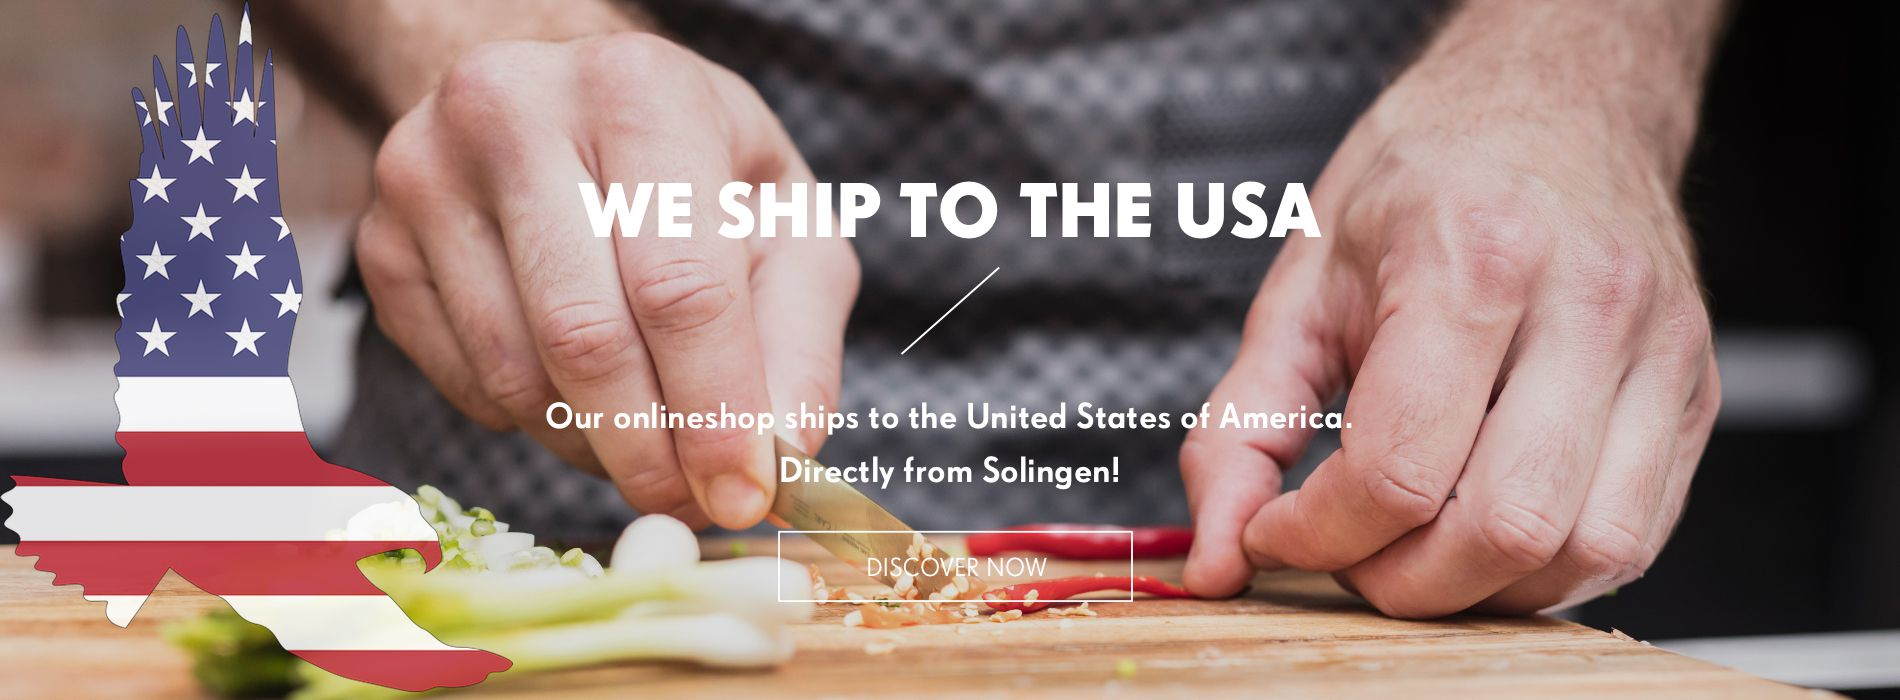 Our Onlineshops ships to the USA!